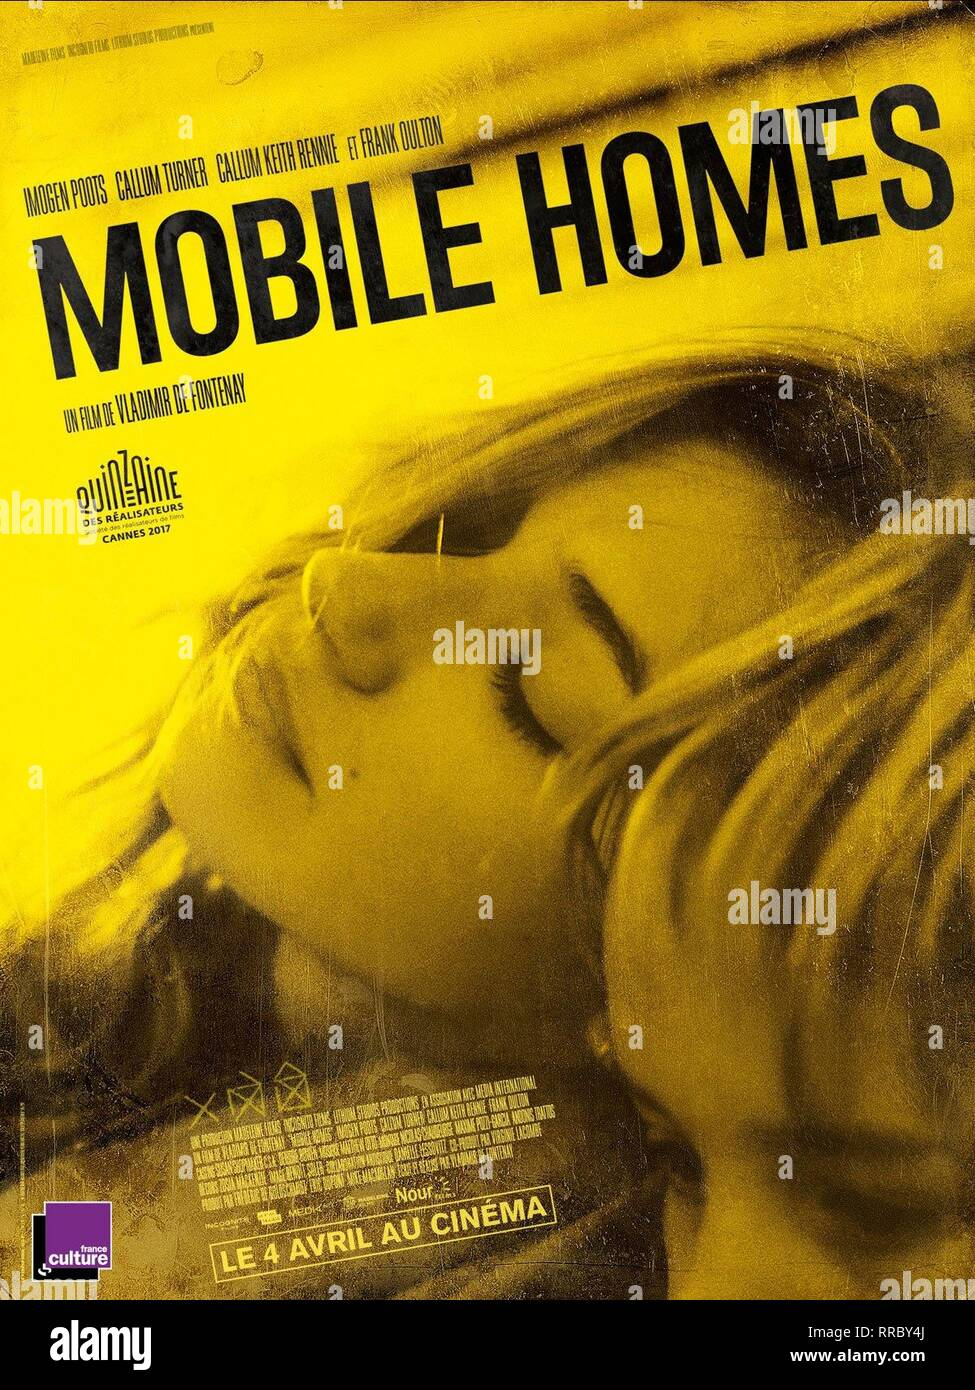 MOBILE HOMES, IMOGEN POOTS POSTER, 2017 - Stock Image